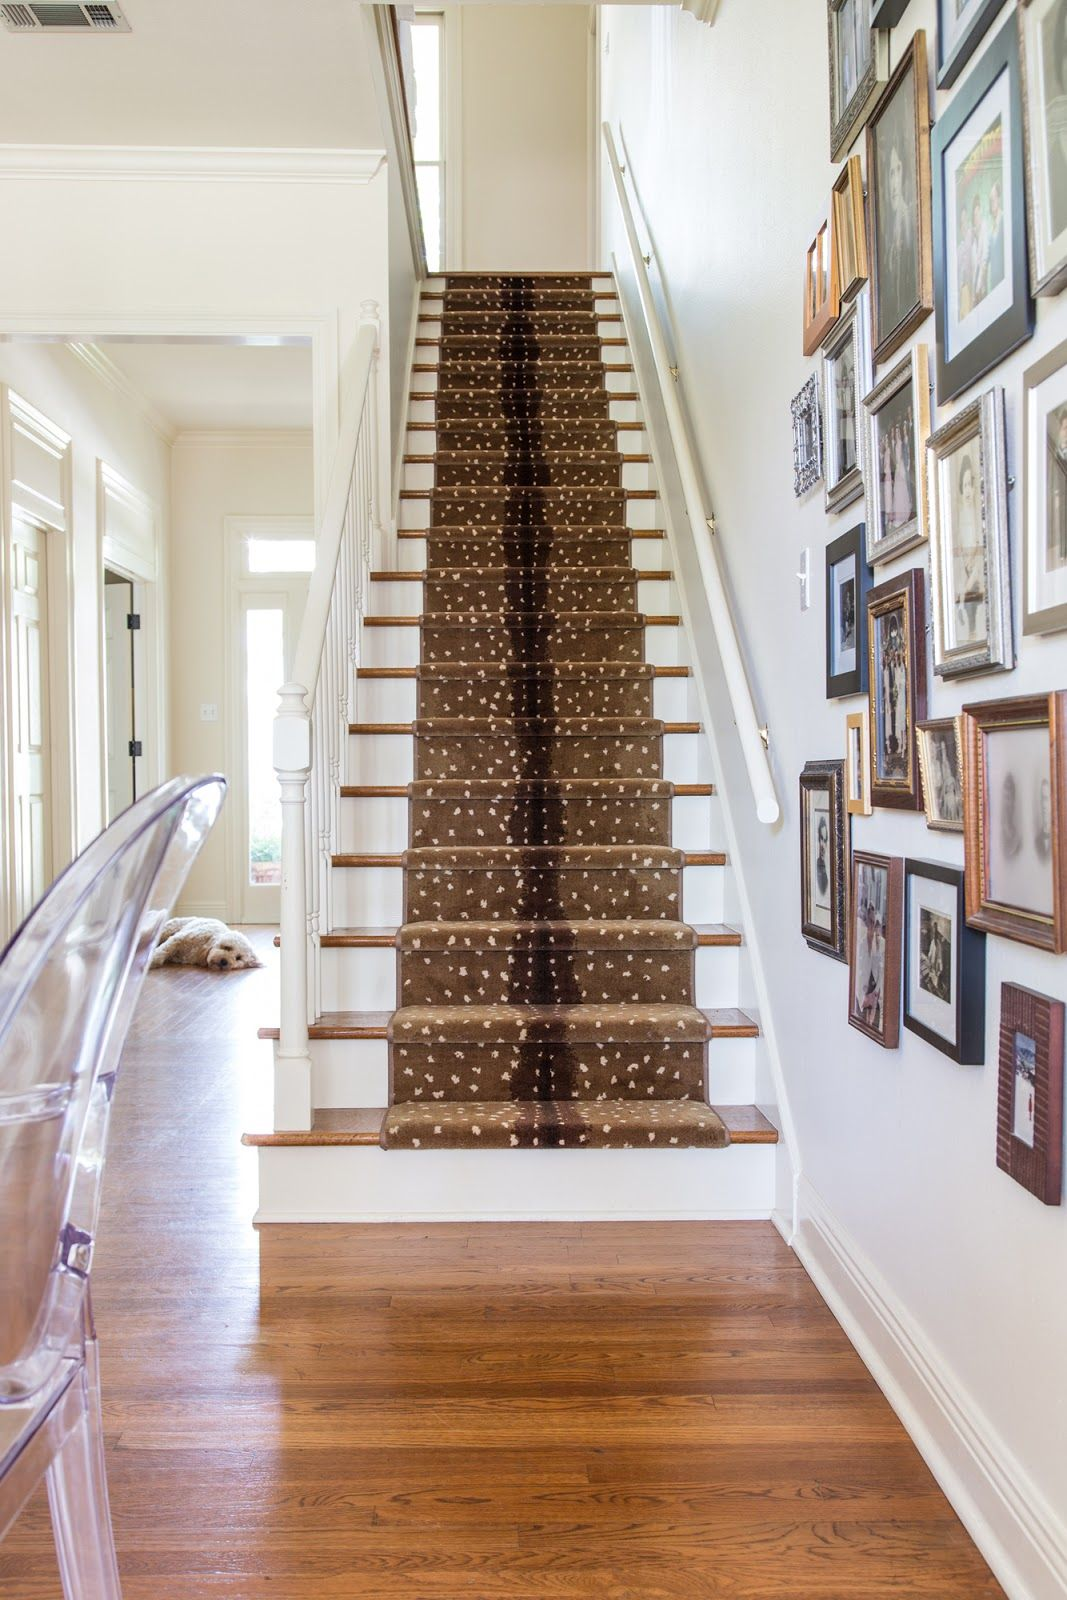 Best Antelope Stair Runner By Karastan Very Forgiving Of 400 x 300